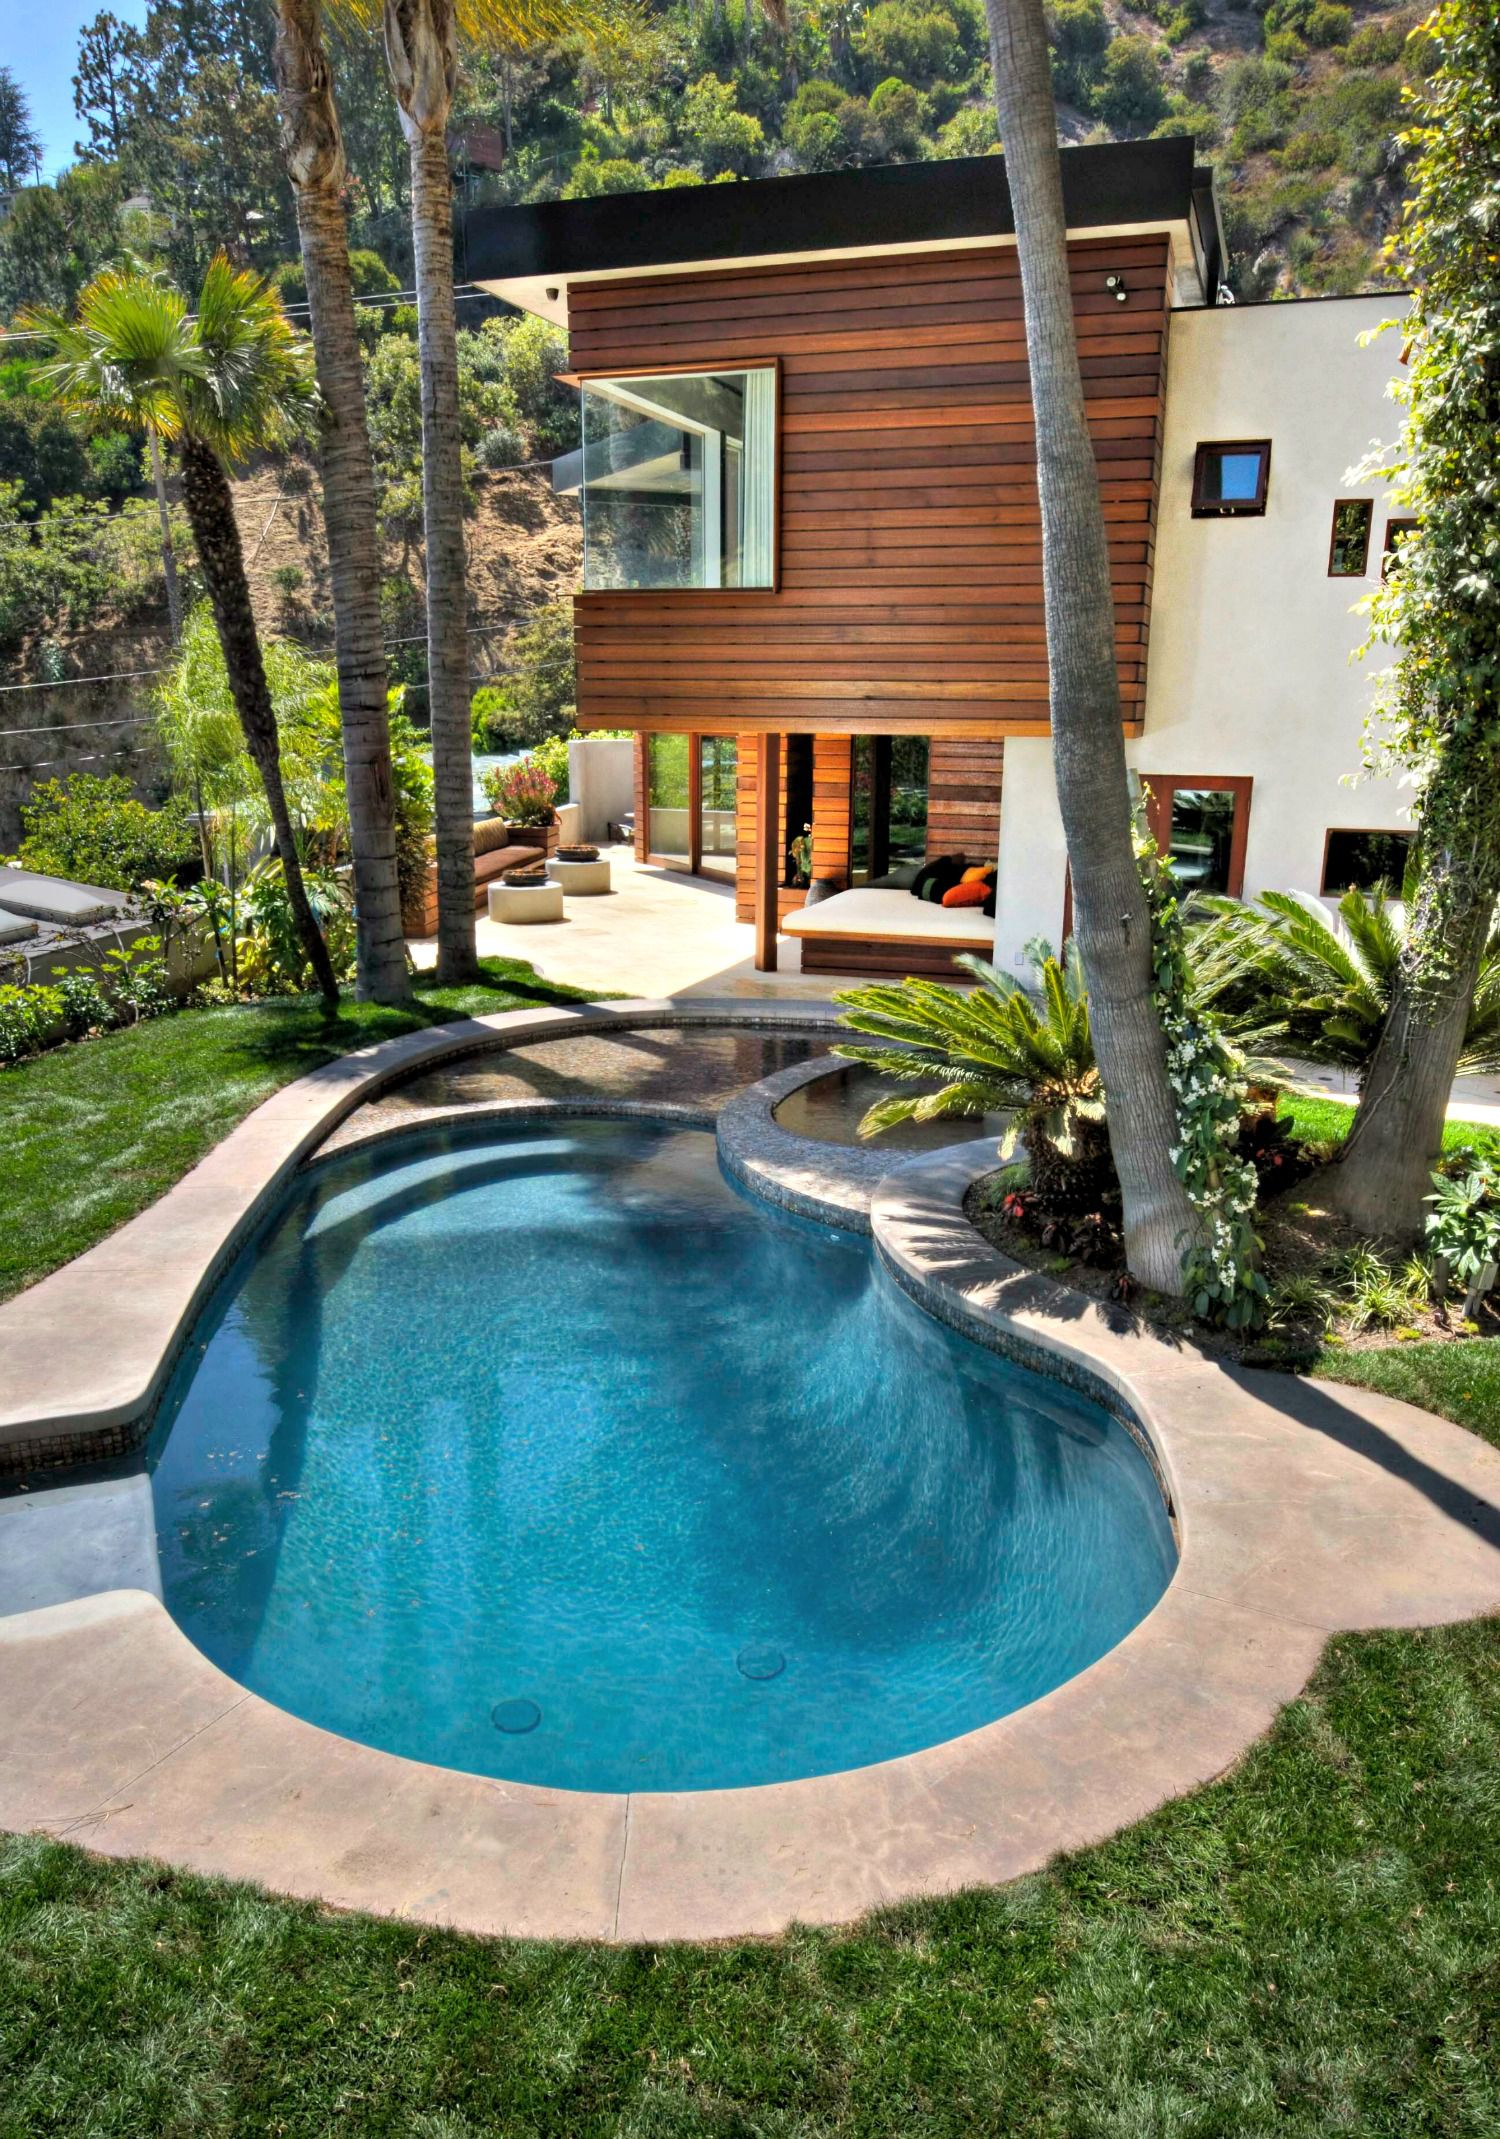 50 Beautiful Swimming Pool Designs regarding 15 Smart Designs of How to Makeover Backyards With Pools And Landscaping